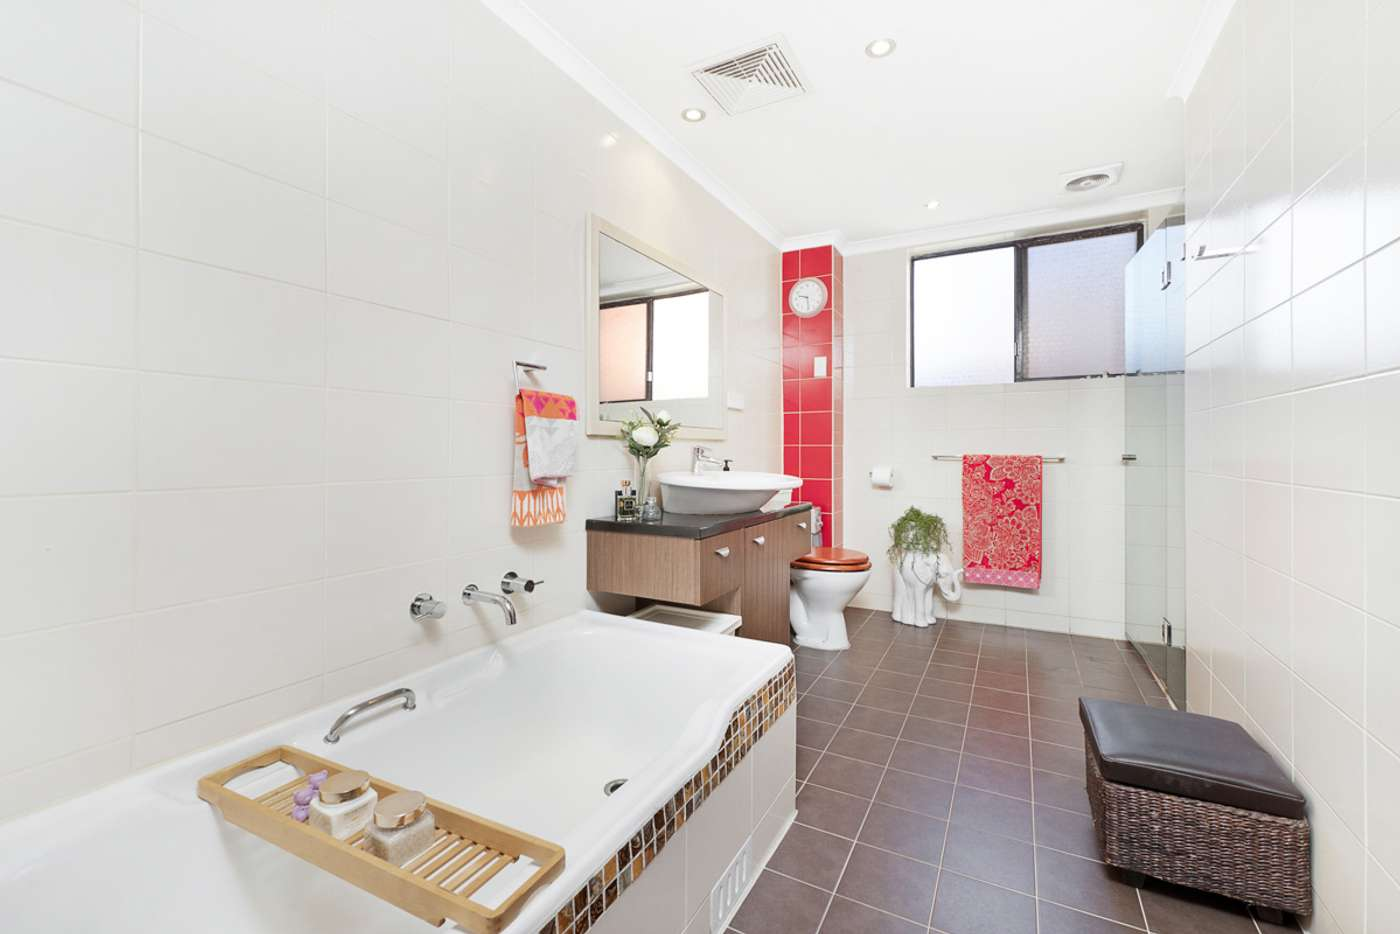 Fifth view of Homely unit listing, 3/77 Chandos St, Ashfield NSW 2131